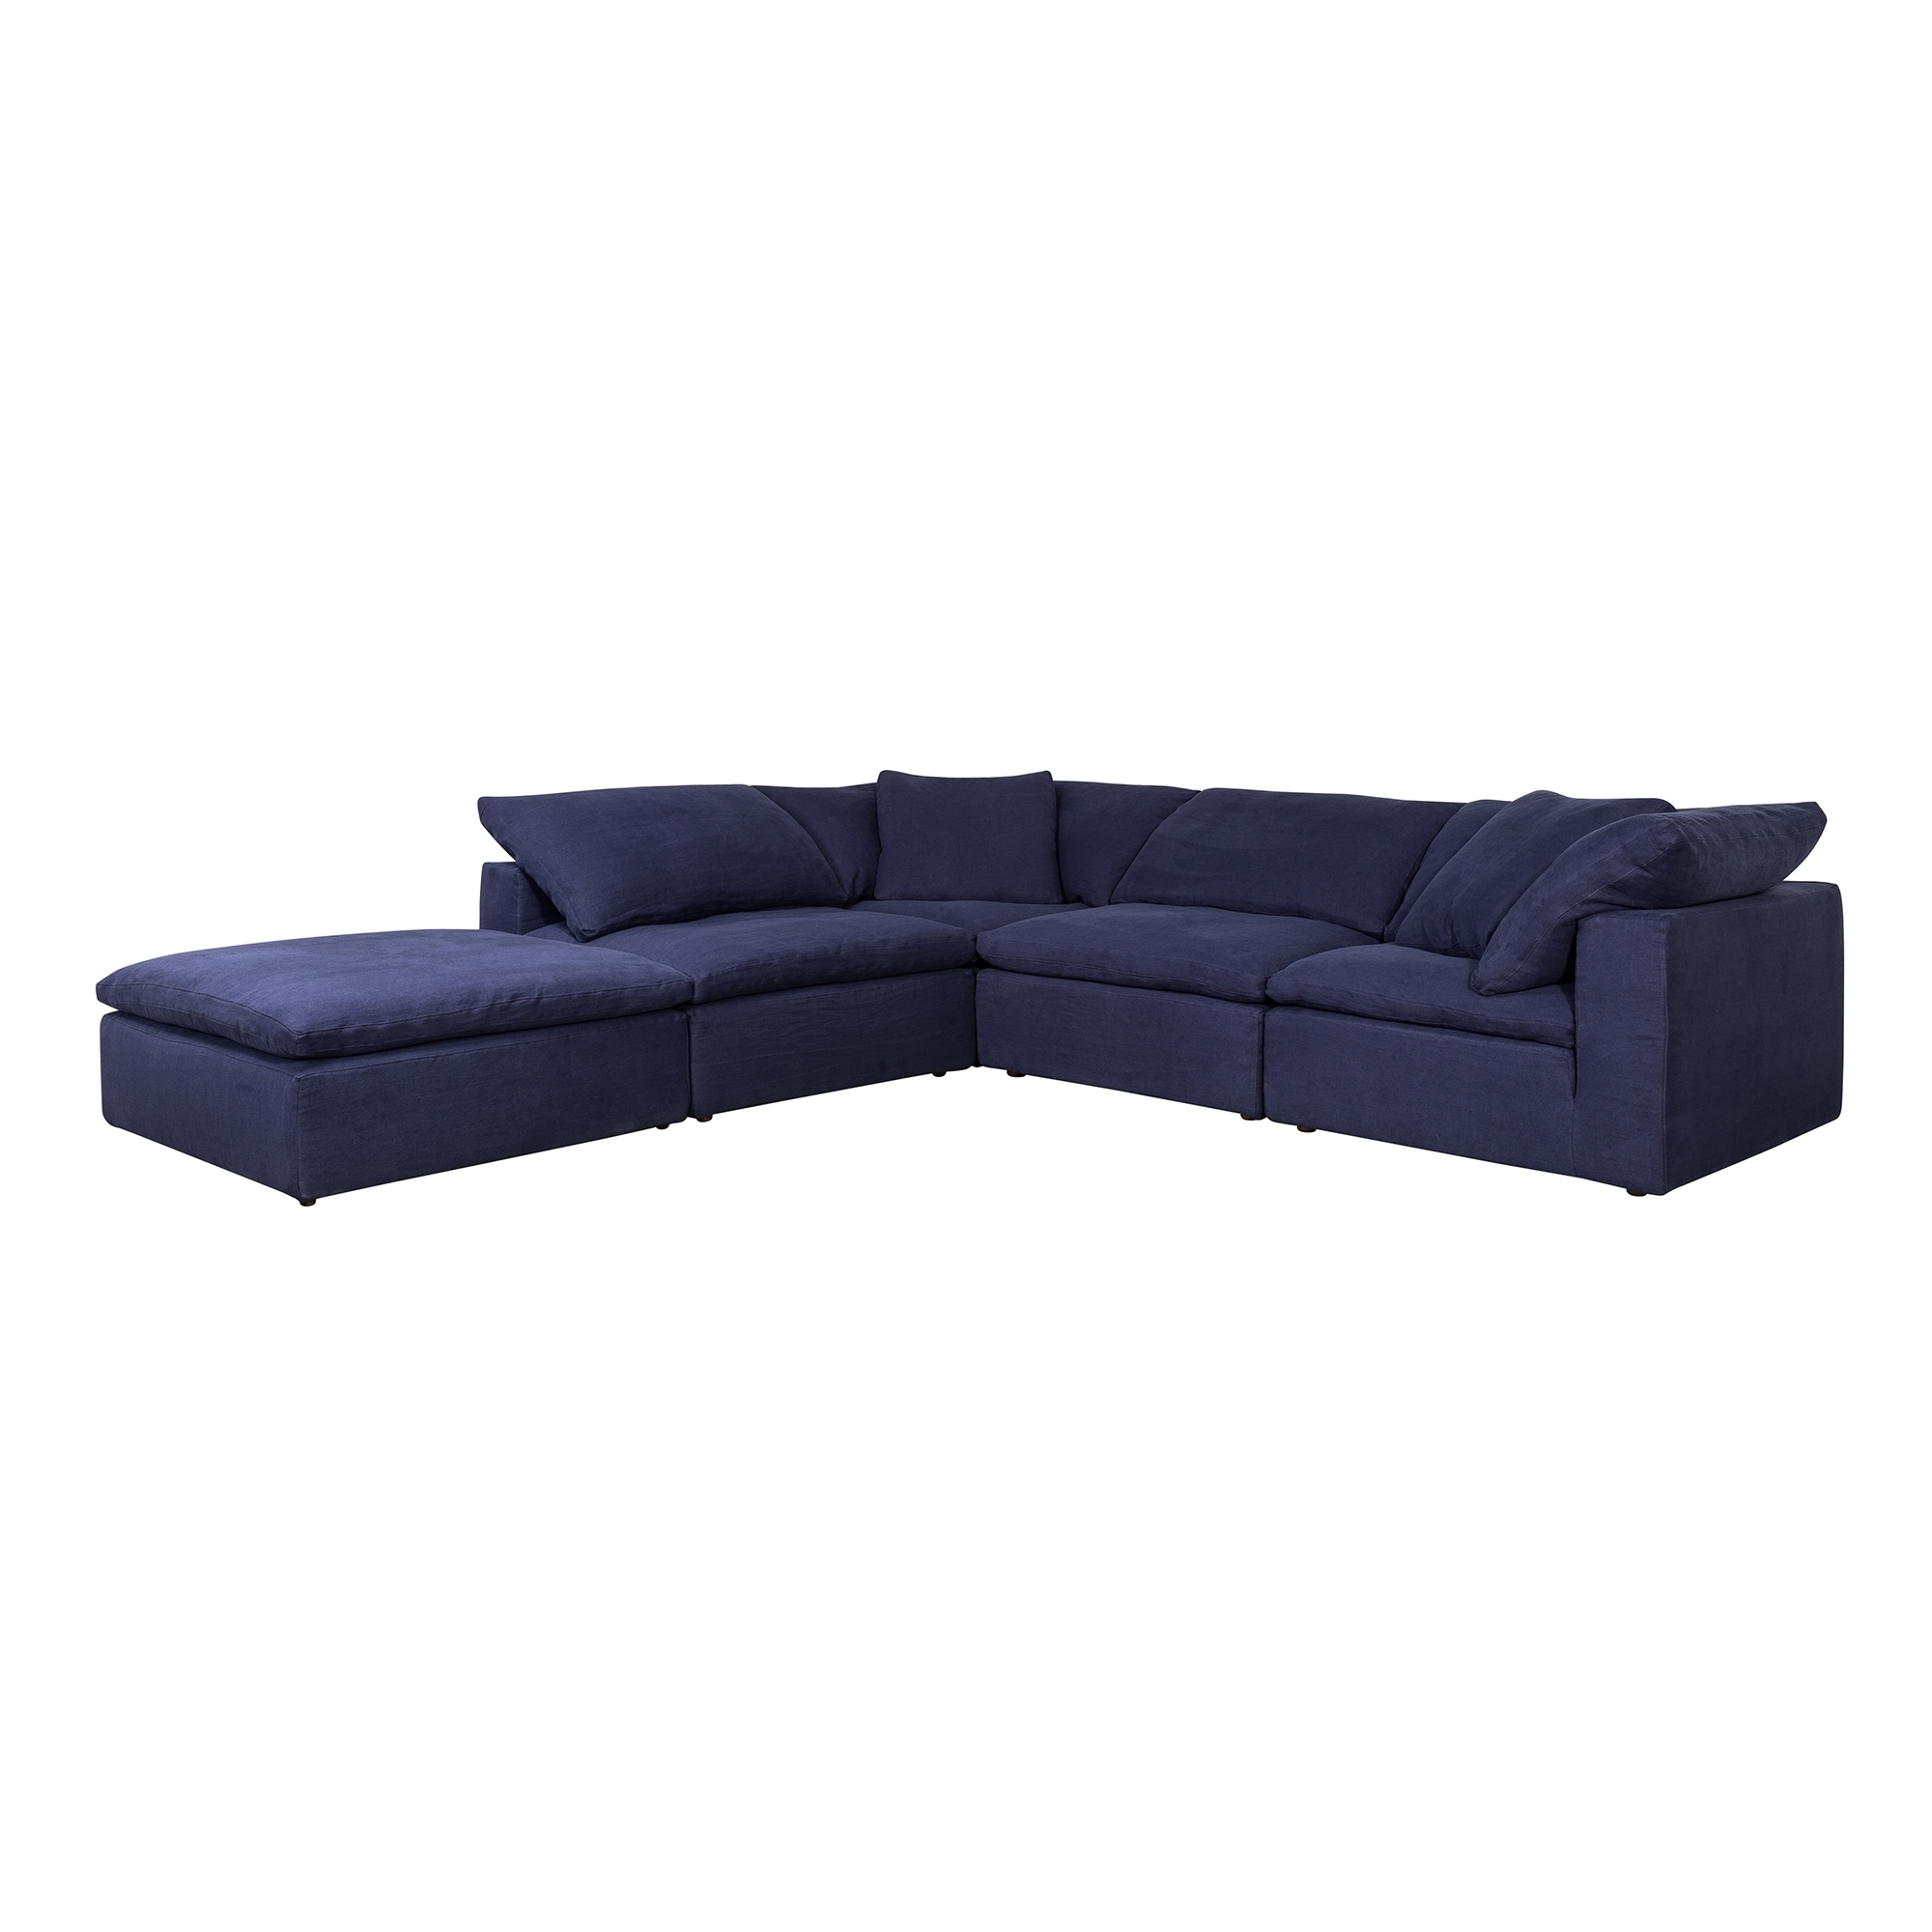 Marlowe Small Modular Sofa – Furniture – Coco Republic – Brands In Latest Small Modular Sofas (View 13 of 20)